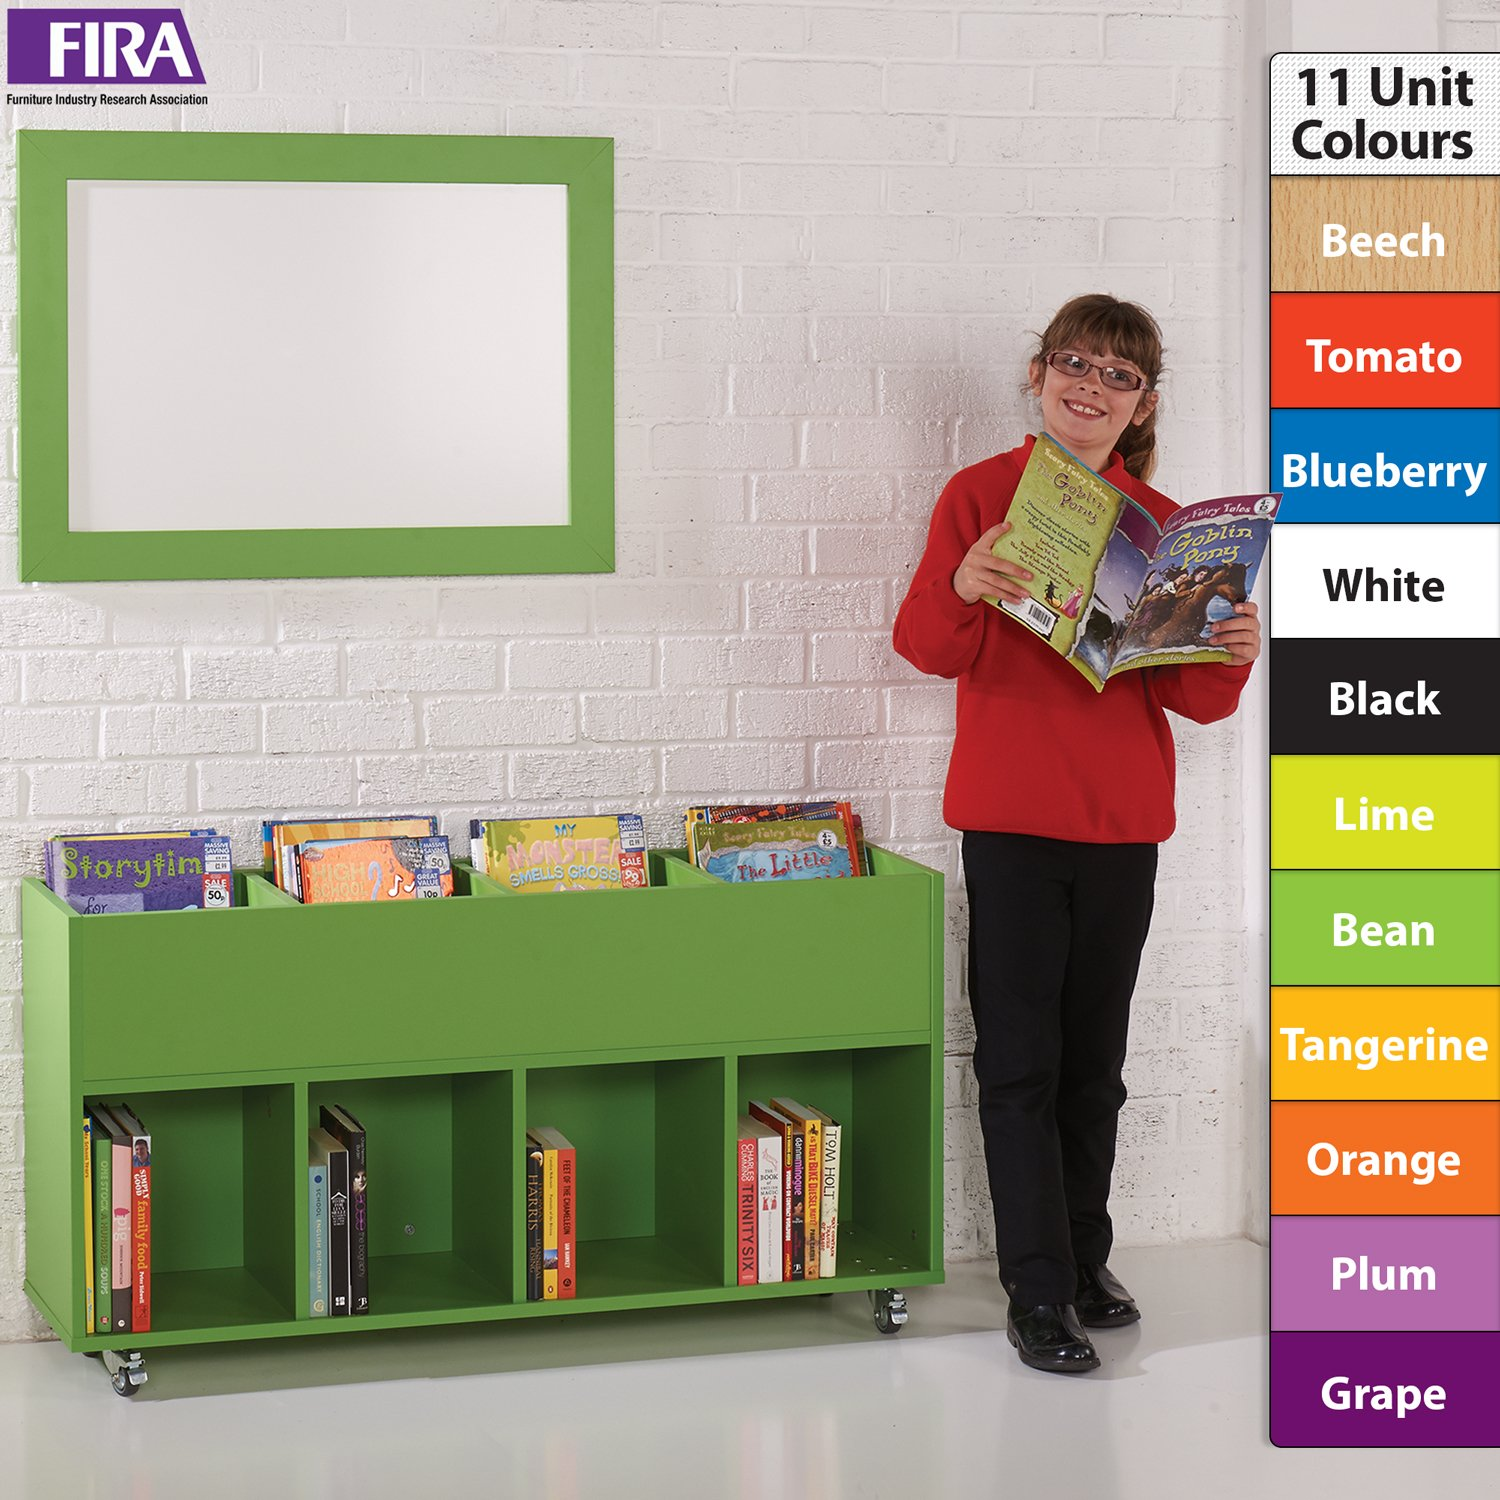 Colourbox Slimline Kinderbox School Mobile Tray Storage/Book Trolley Unit with 8 Compartments to Store Books, Toys - 11 Unit Colours, incl. (Tomato) Wonderwall Products Ltd